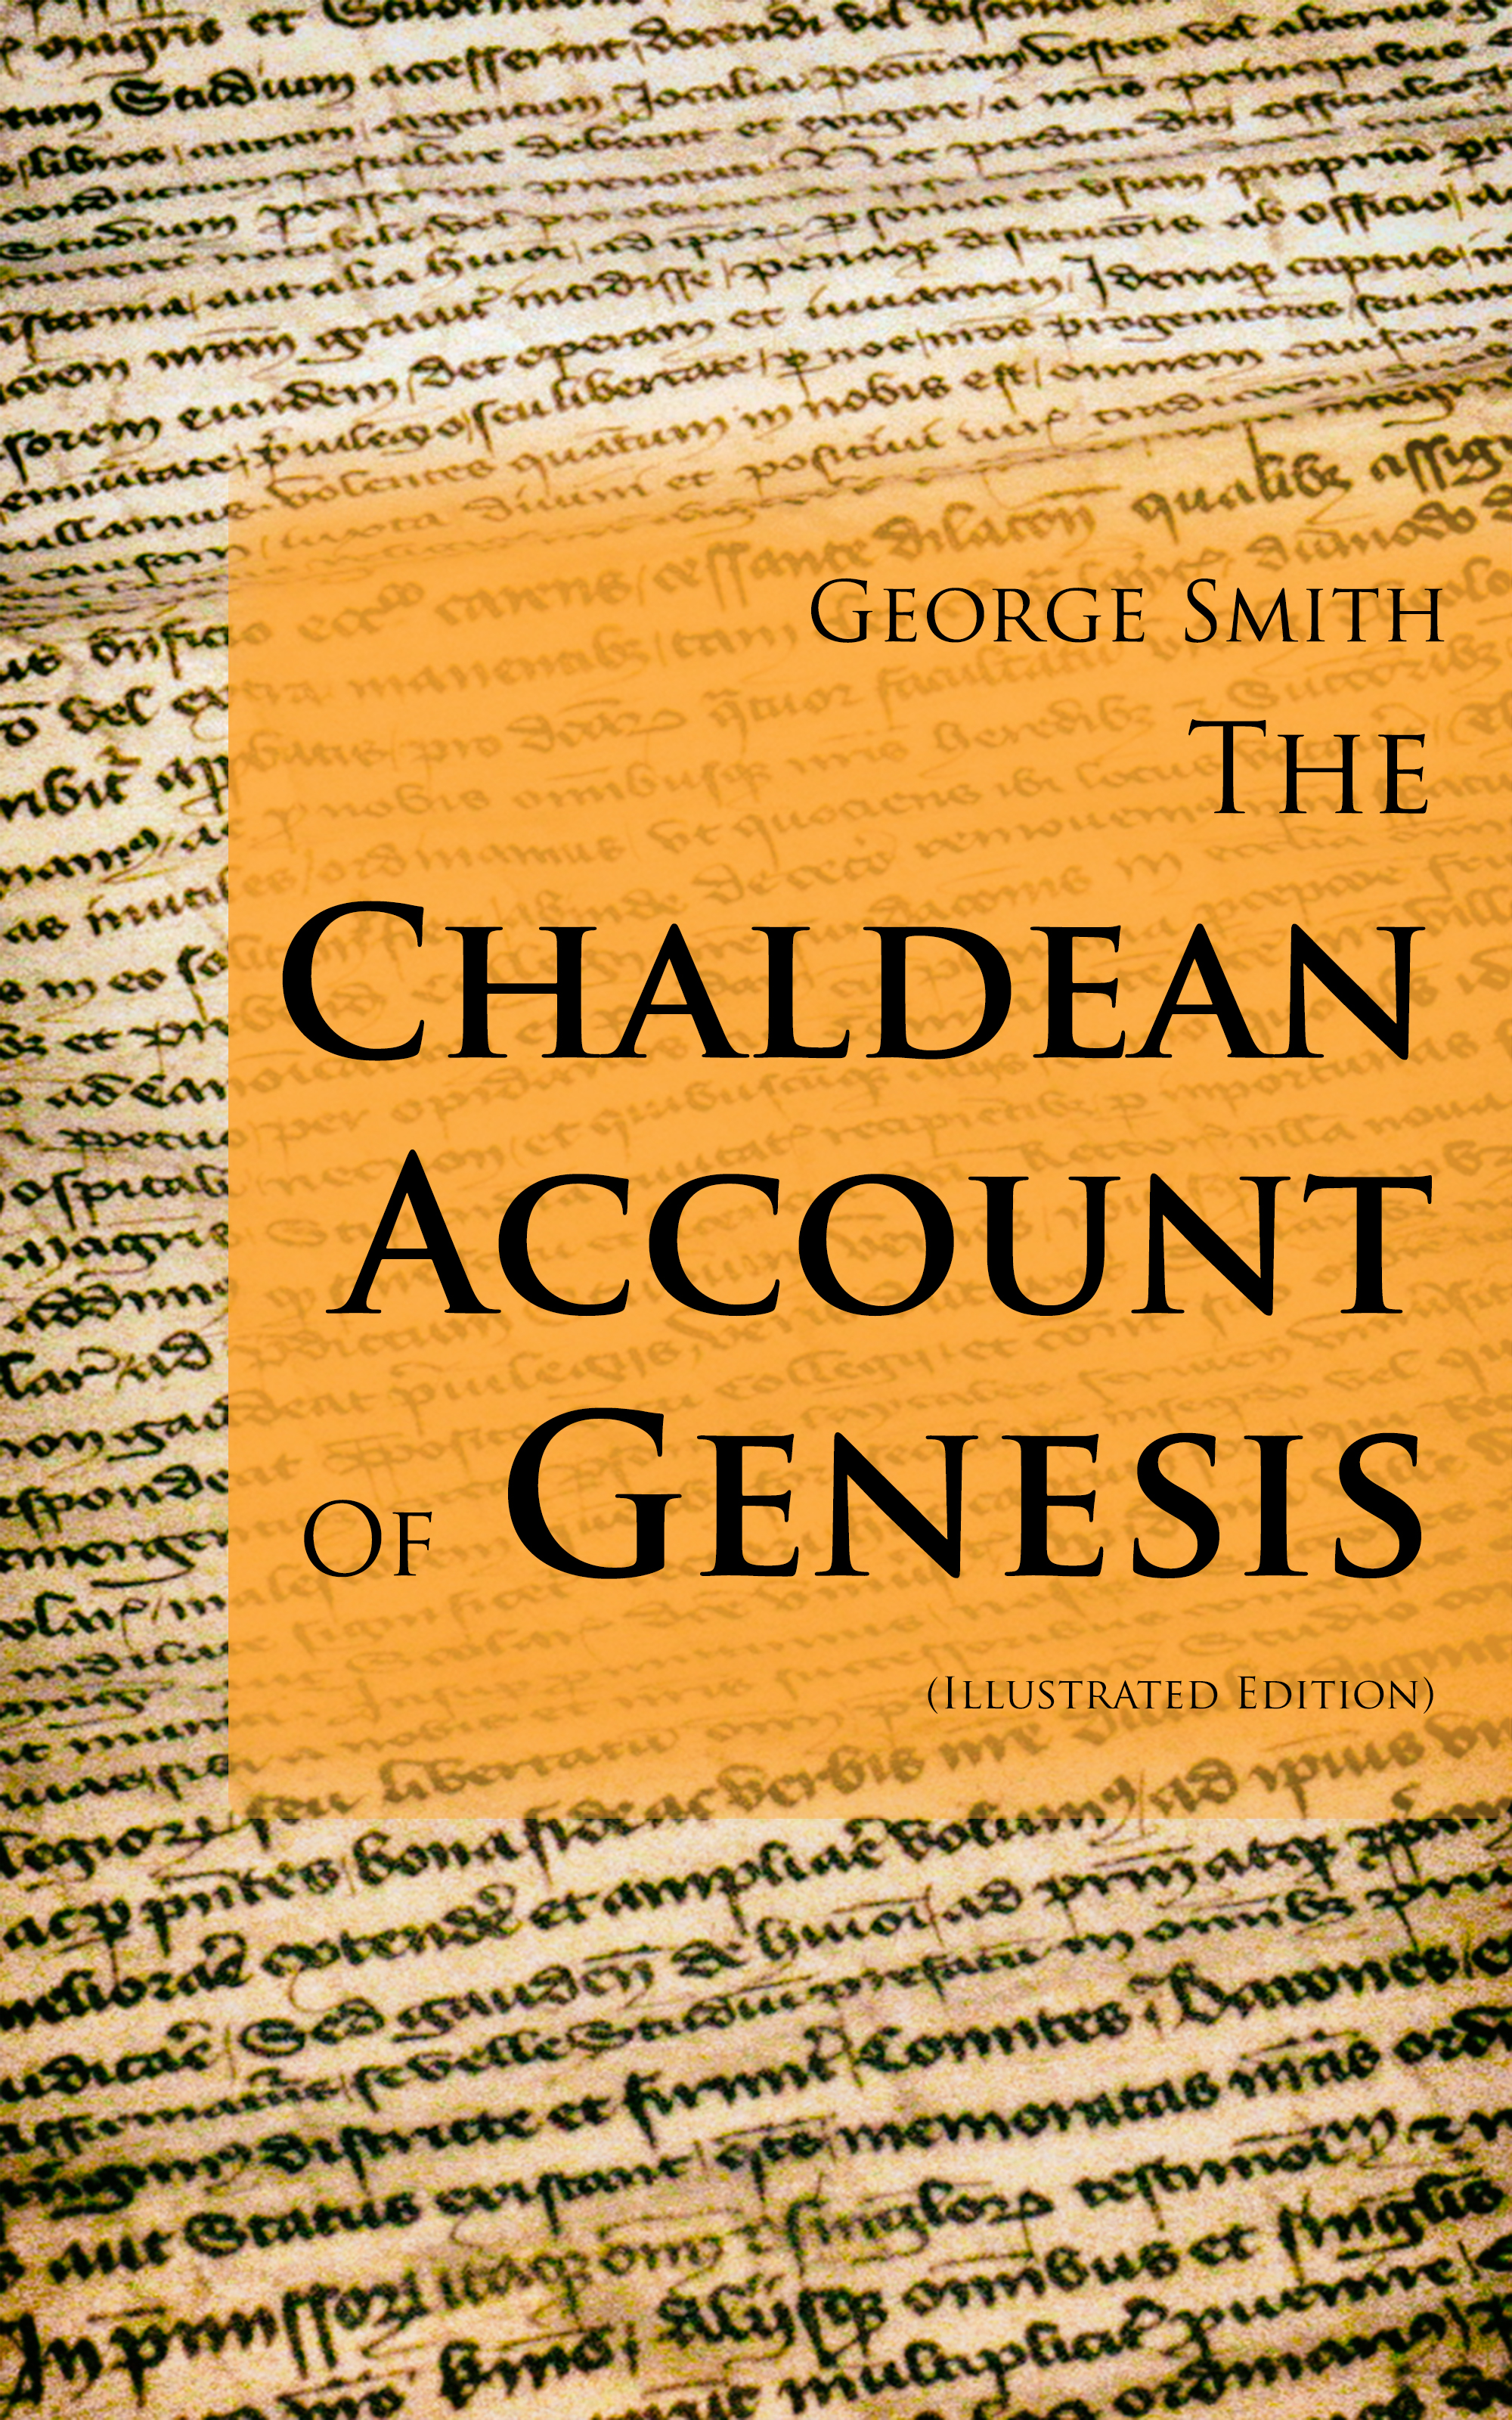 Smith George Albert The Chaldean Account Of Genesis (Illustrated Edition) genesis genesis a trick of the tail